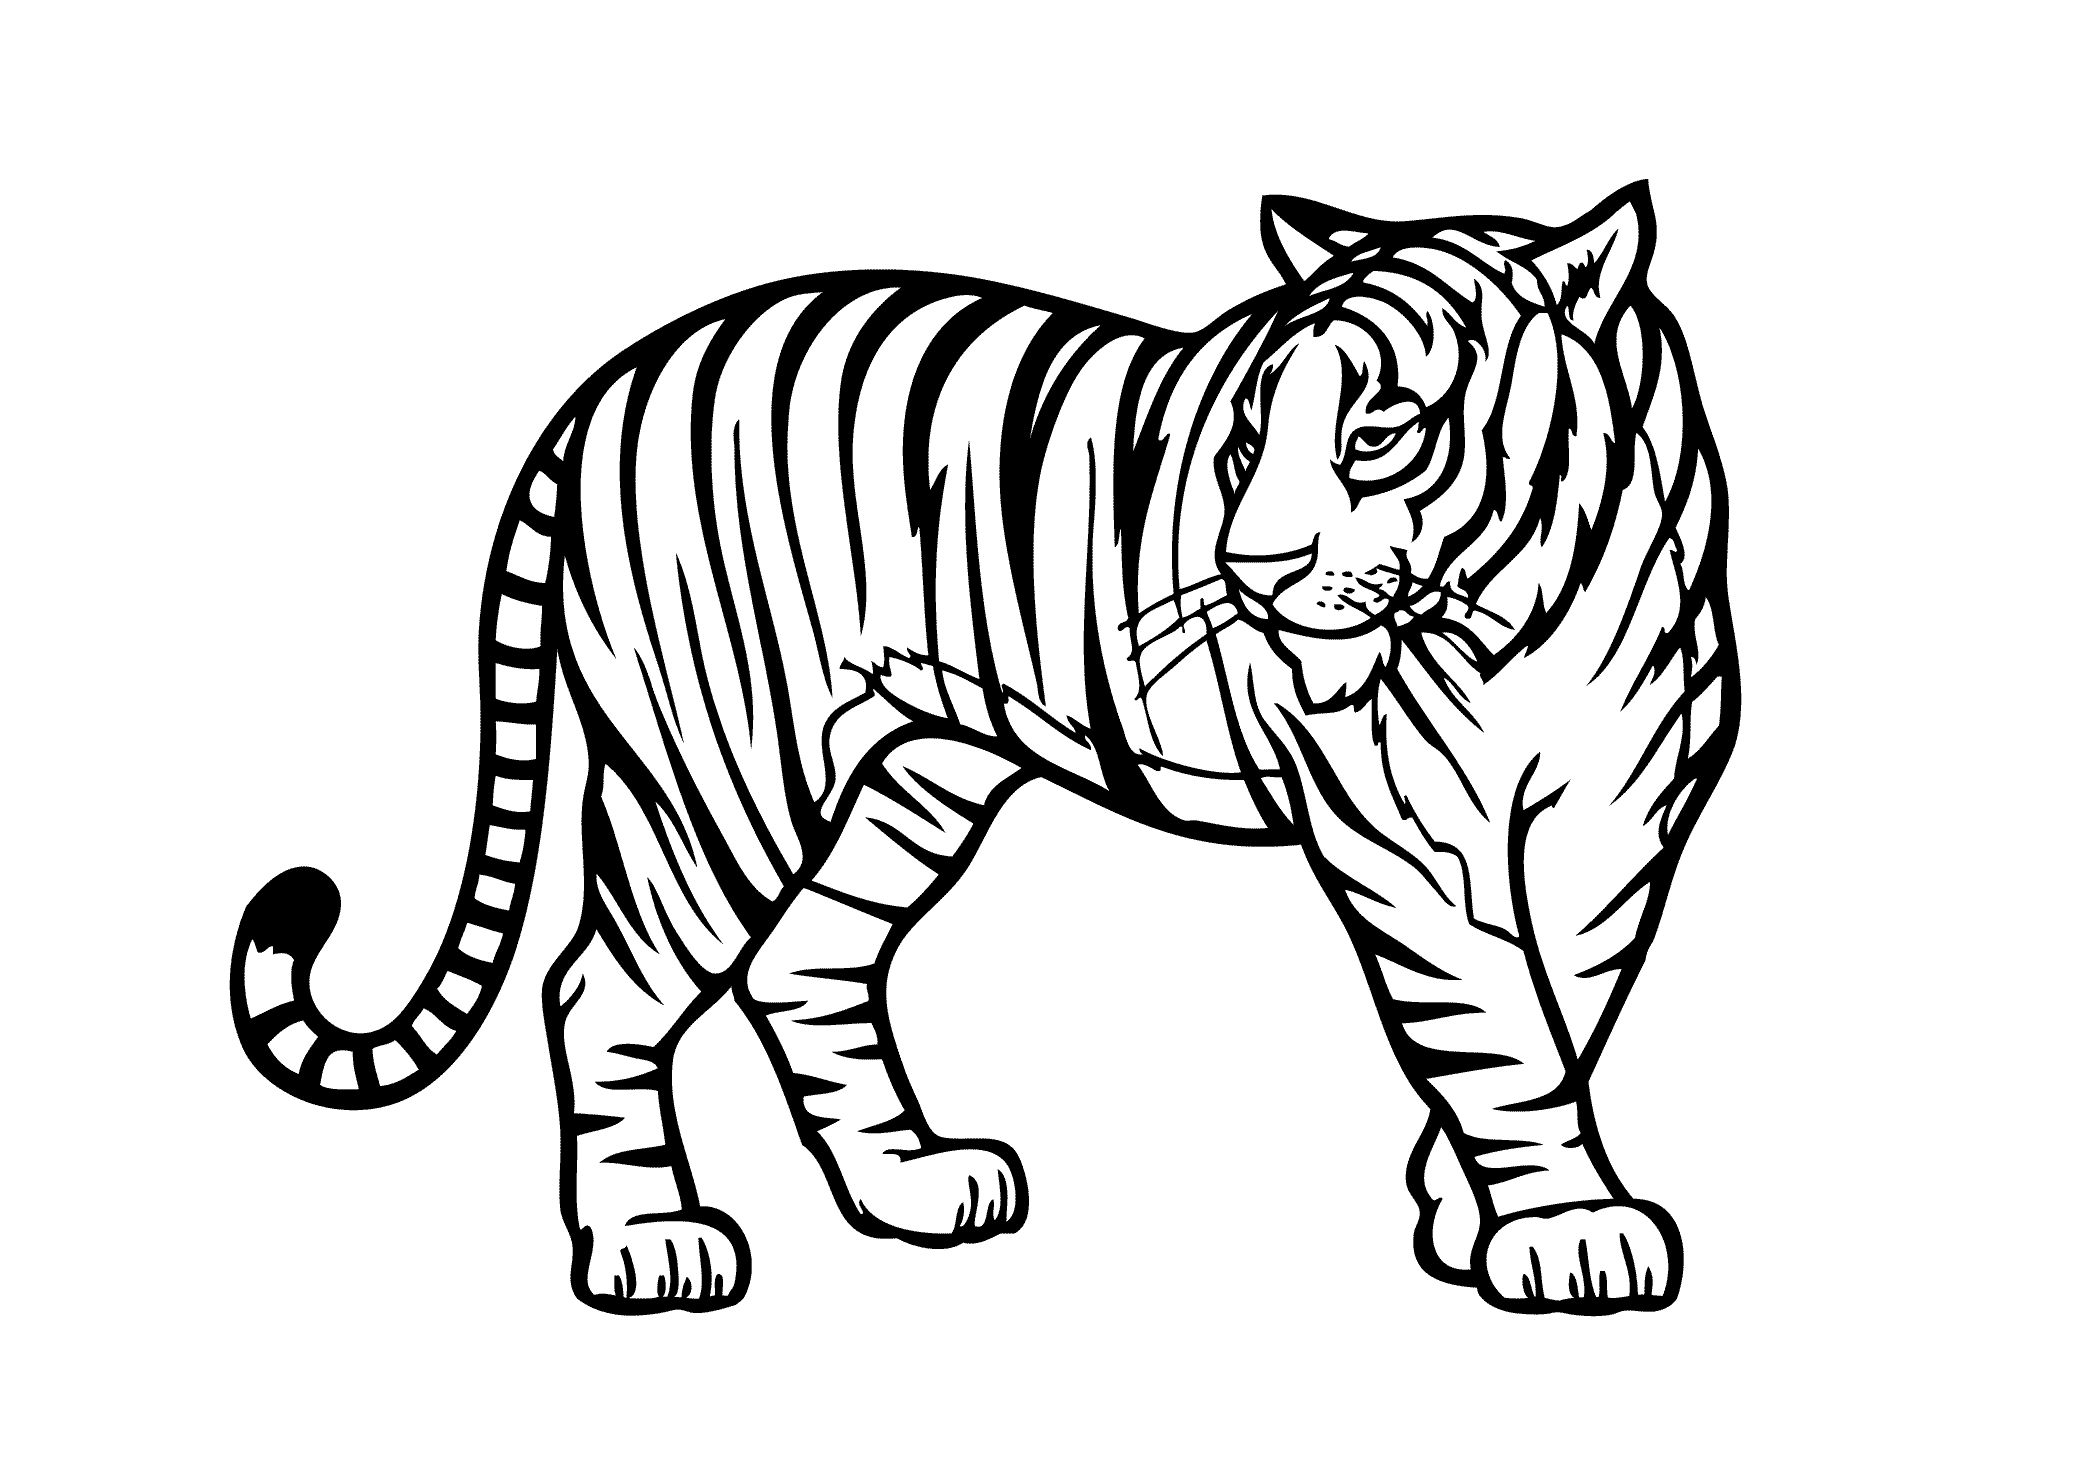 Tiger Coloring Pages And Tiger Wild Animals Coloring Pages For Kids ...